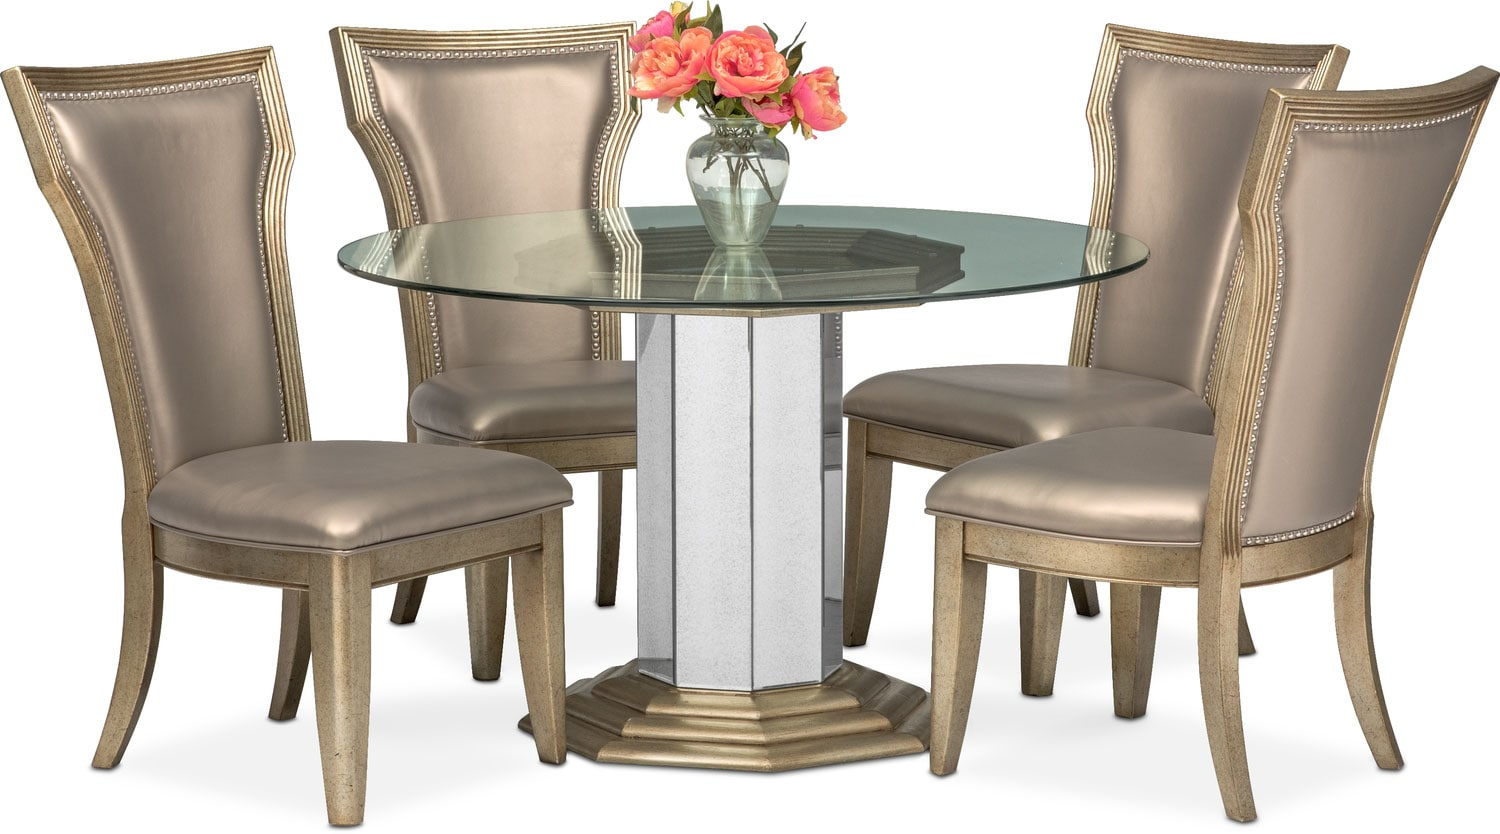 Superbe Angelina Round Table And 4 Side Chairs   Metallic